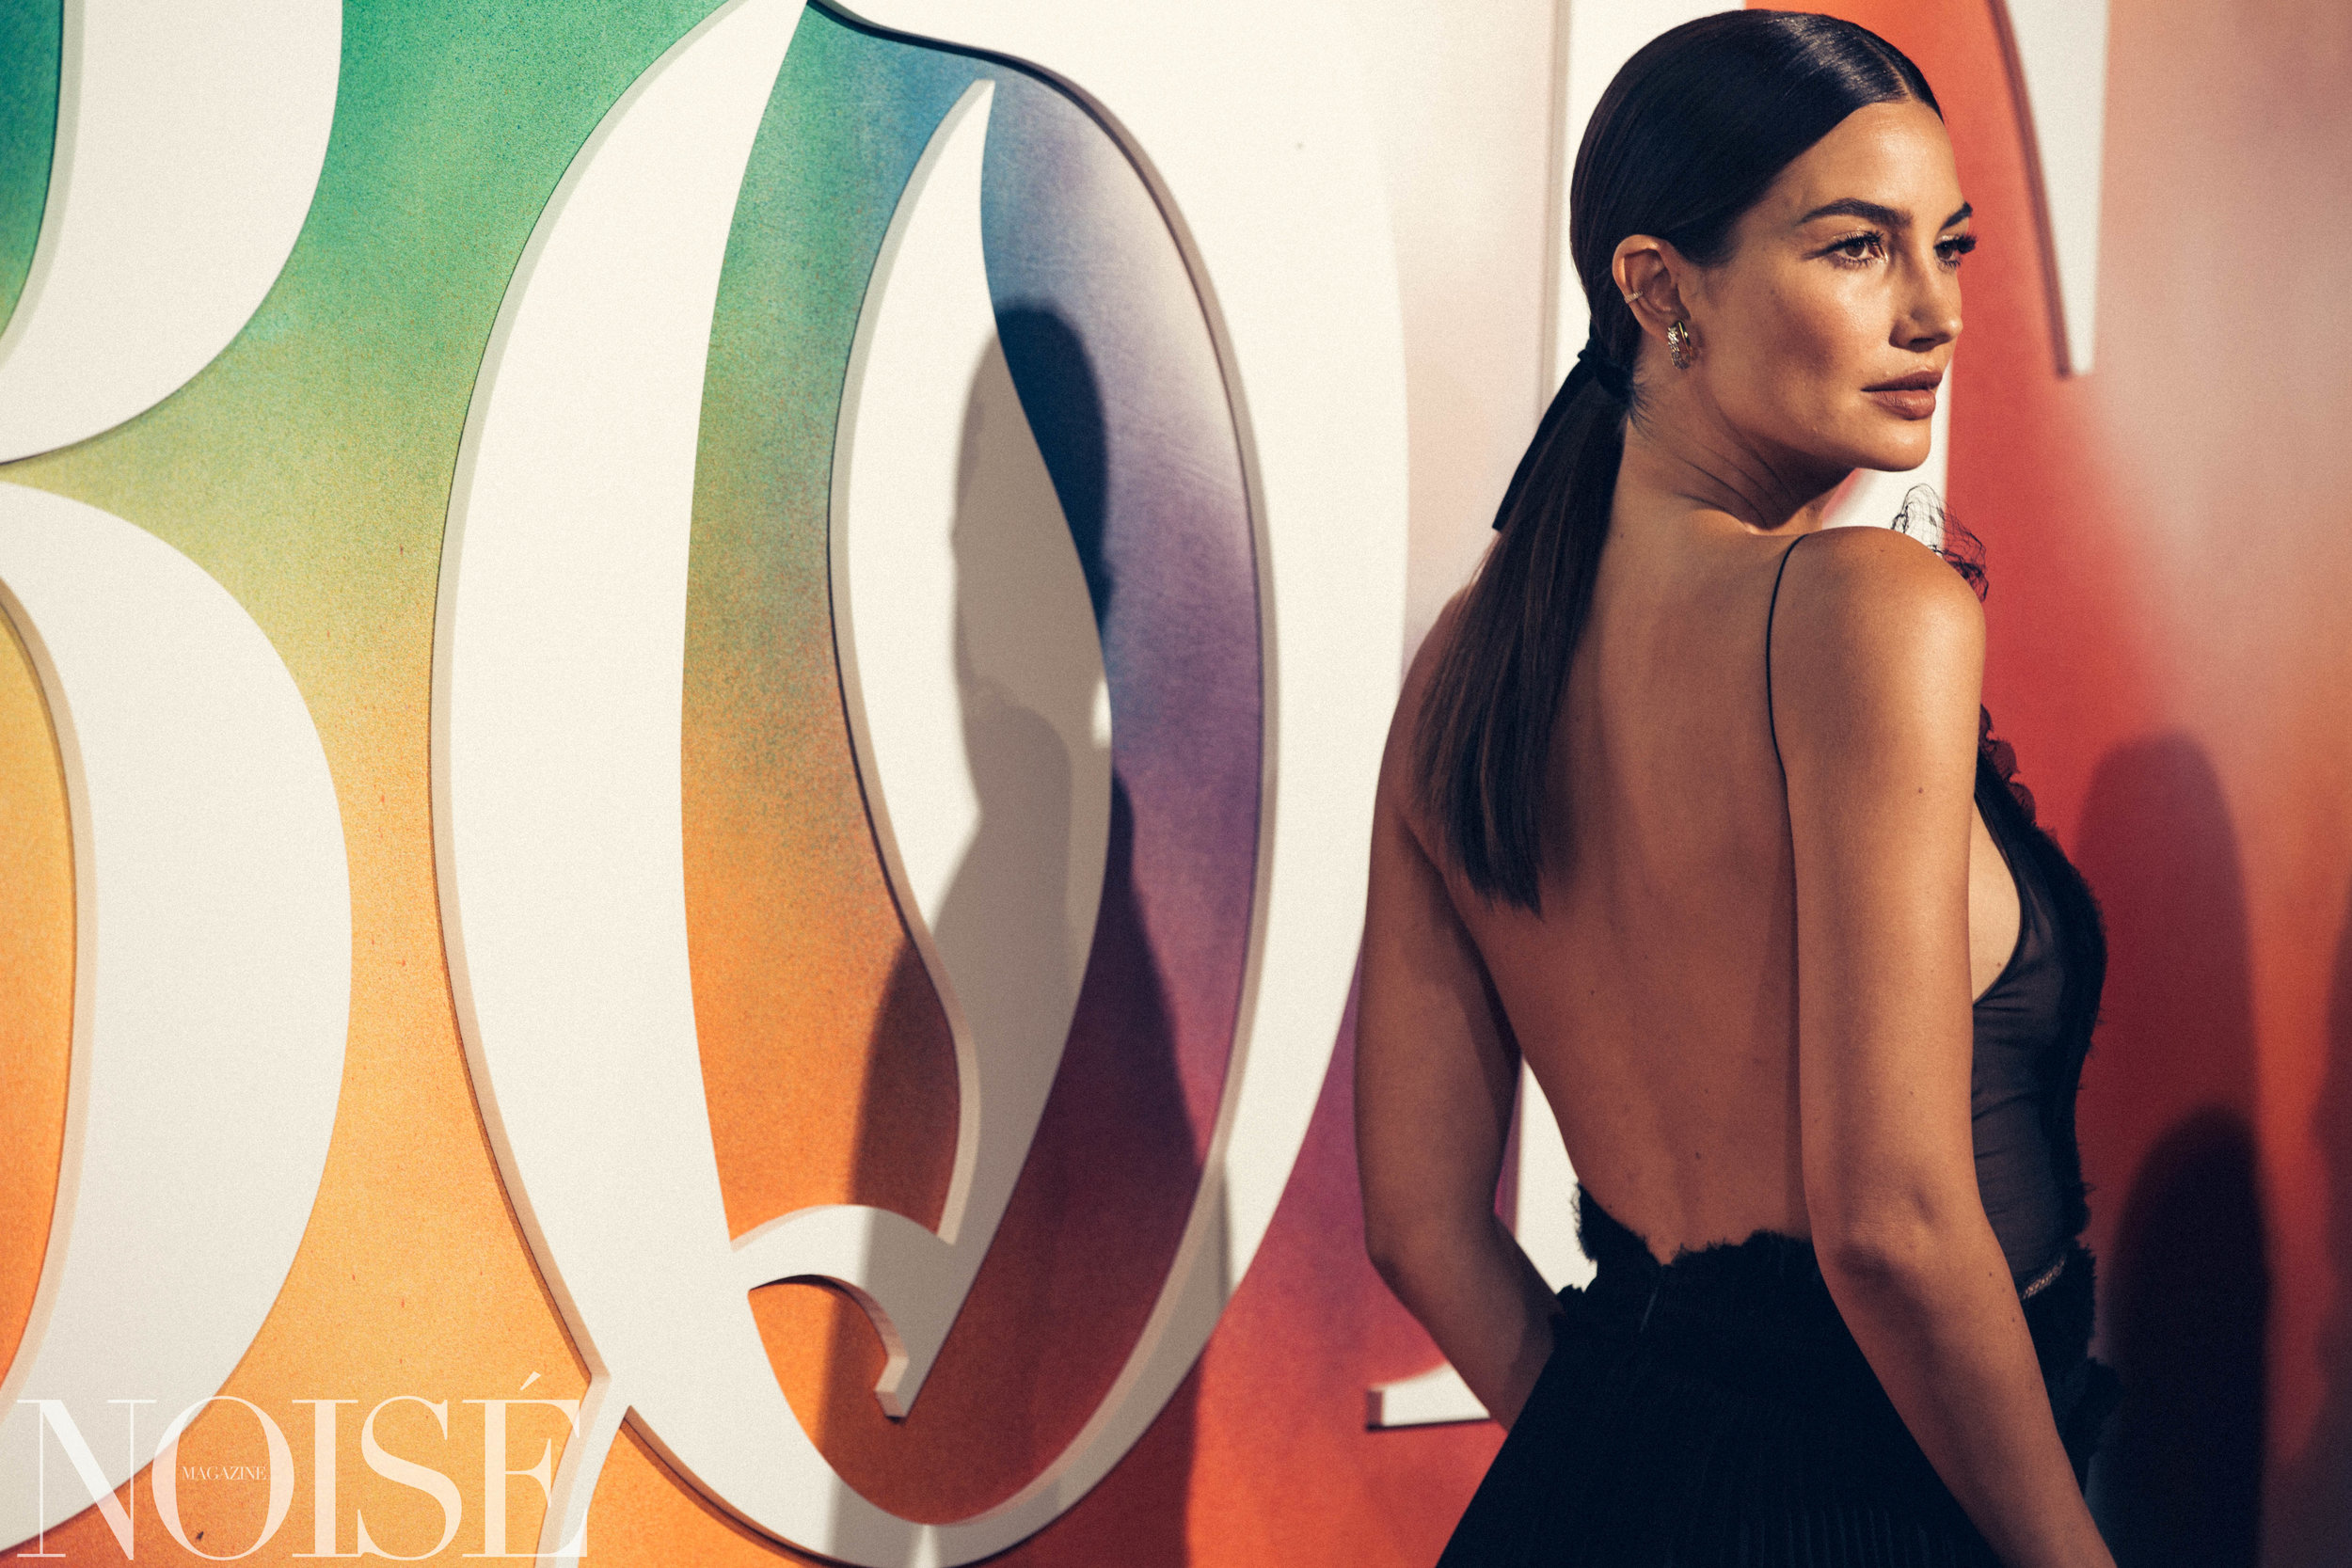 Lily Aldridge wearing Jason Wu and Jimmy Choo at BoF 500 gala, Photograph by Siyu Tang